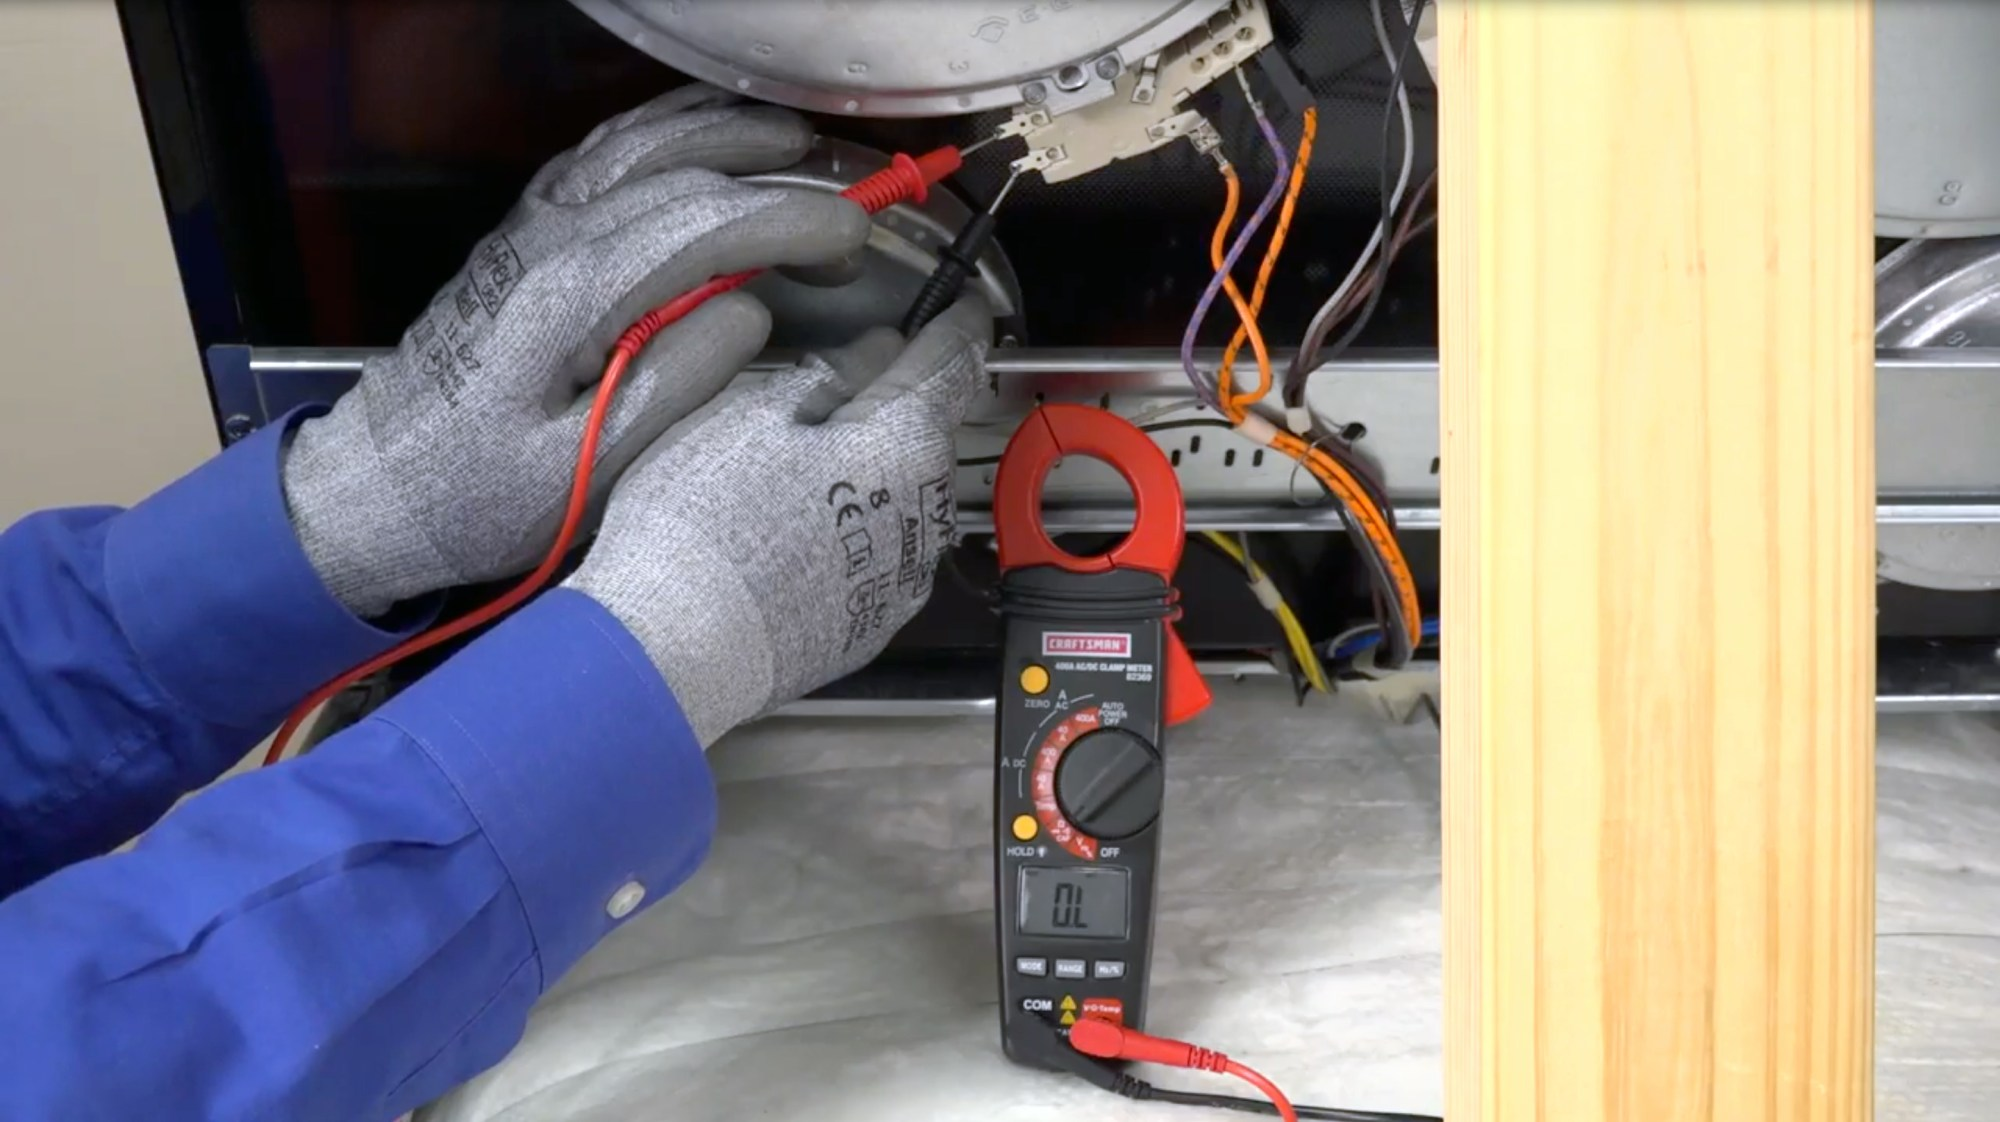 hight resolution of how to replace an oven temperature sensor on an electric range repair guide